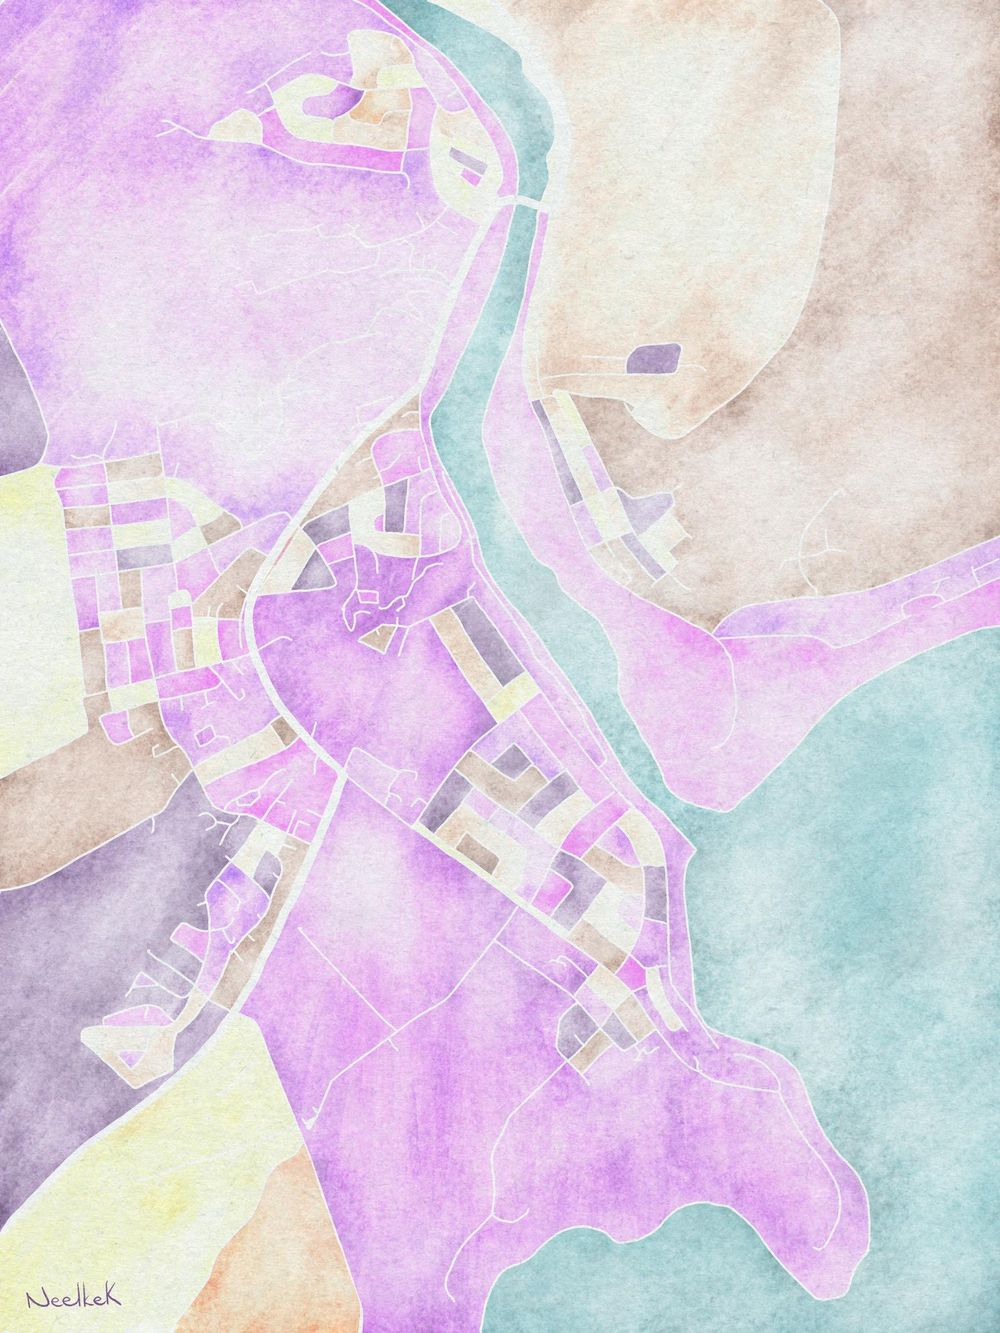 Map of Still Bay - image 1 - student project